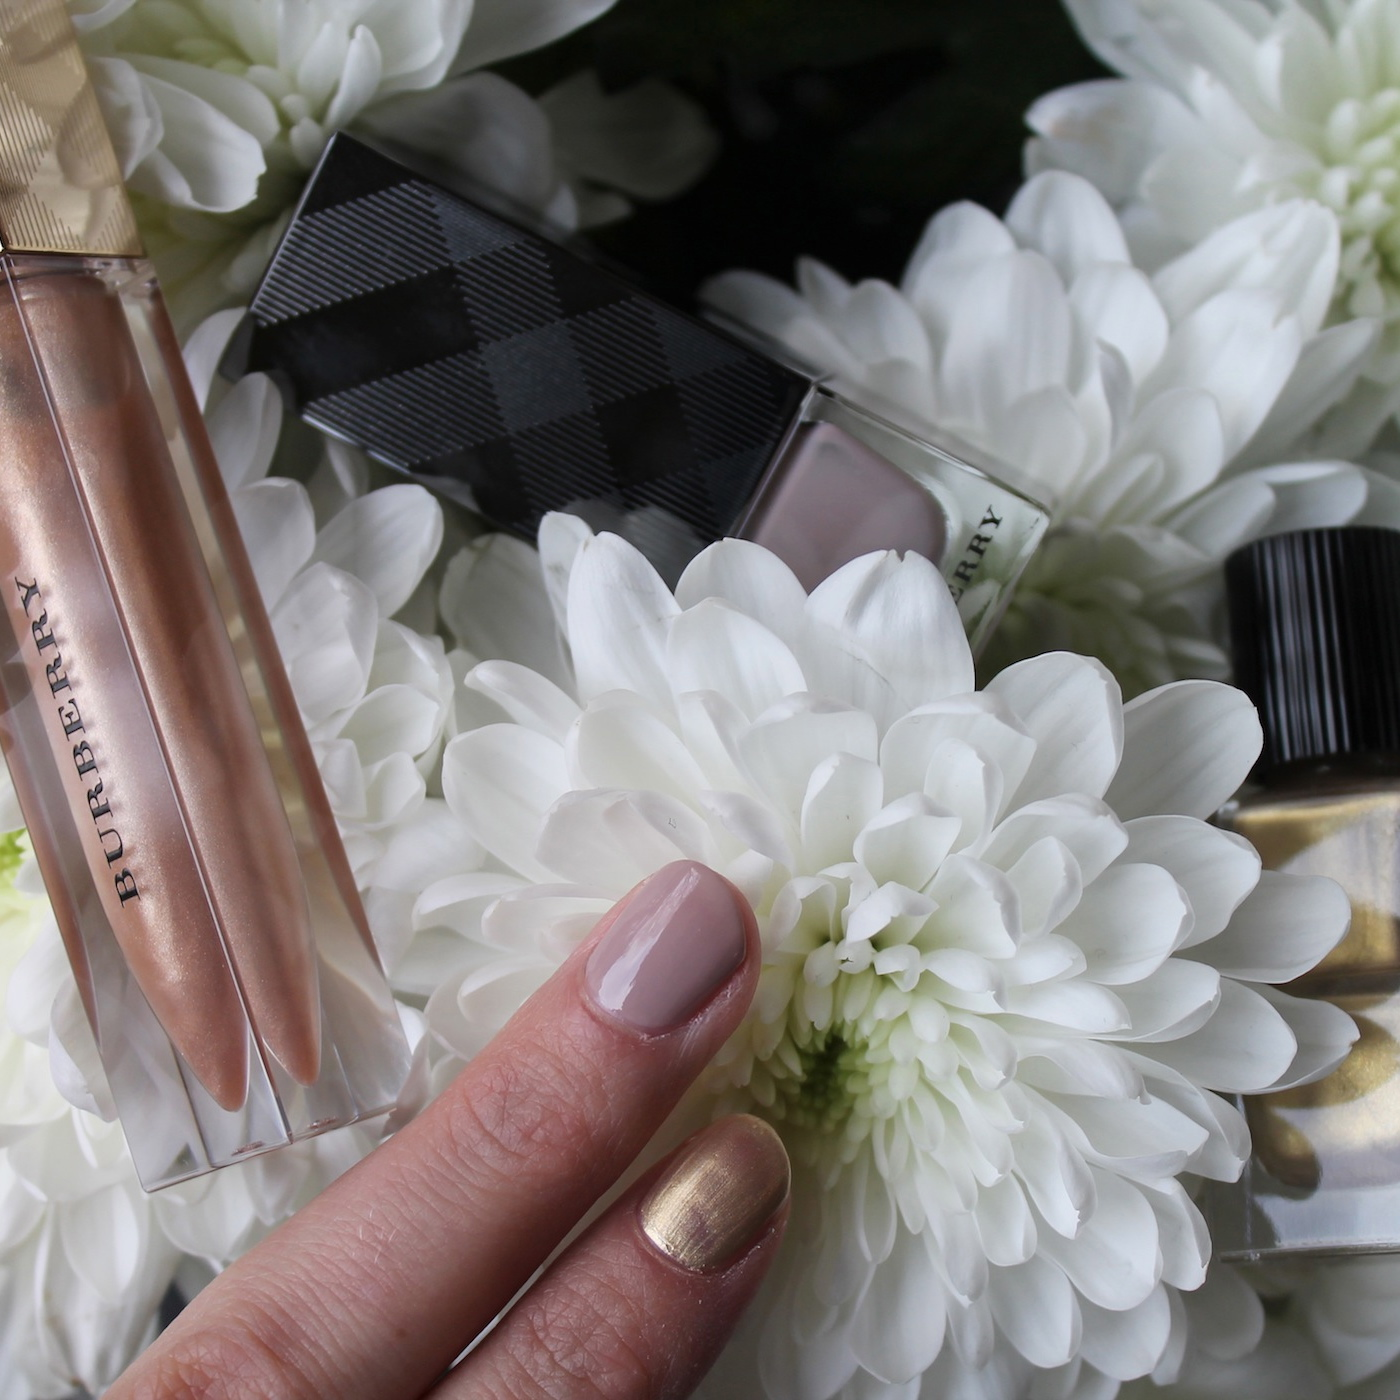 Burberry-Make-up-Test-Trench-Kiss-Lip-gloss-Light-Gold-Nagellack-Ash-Rose-Iconic-Colour